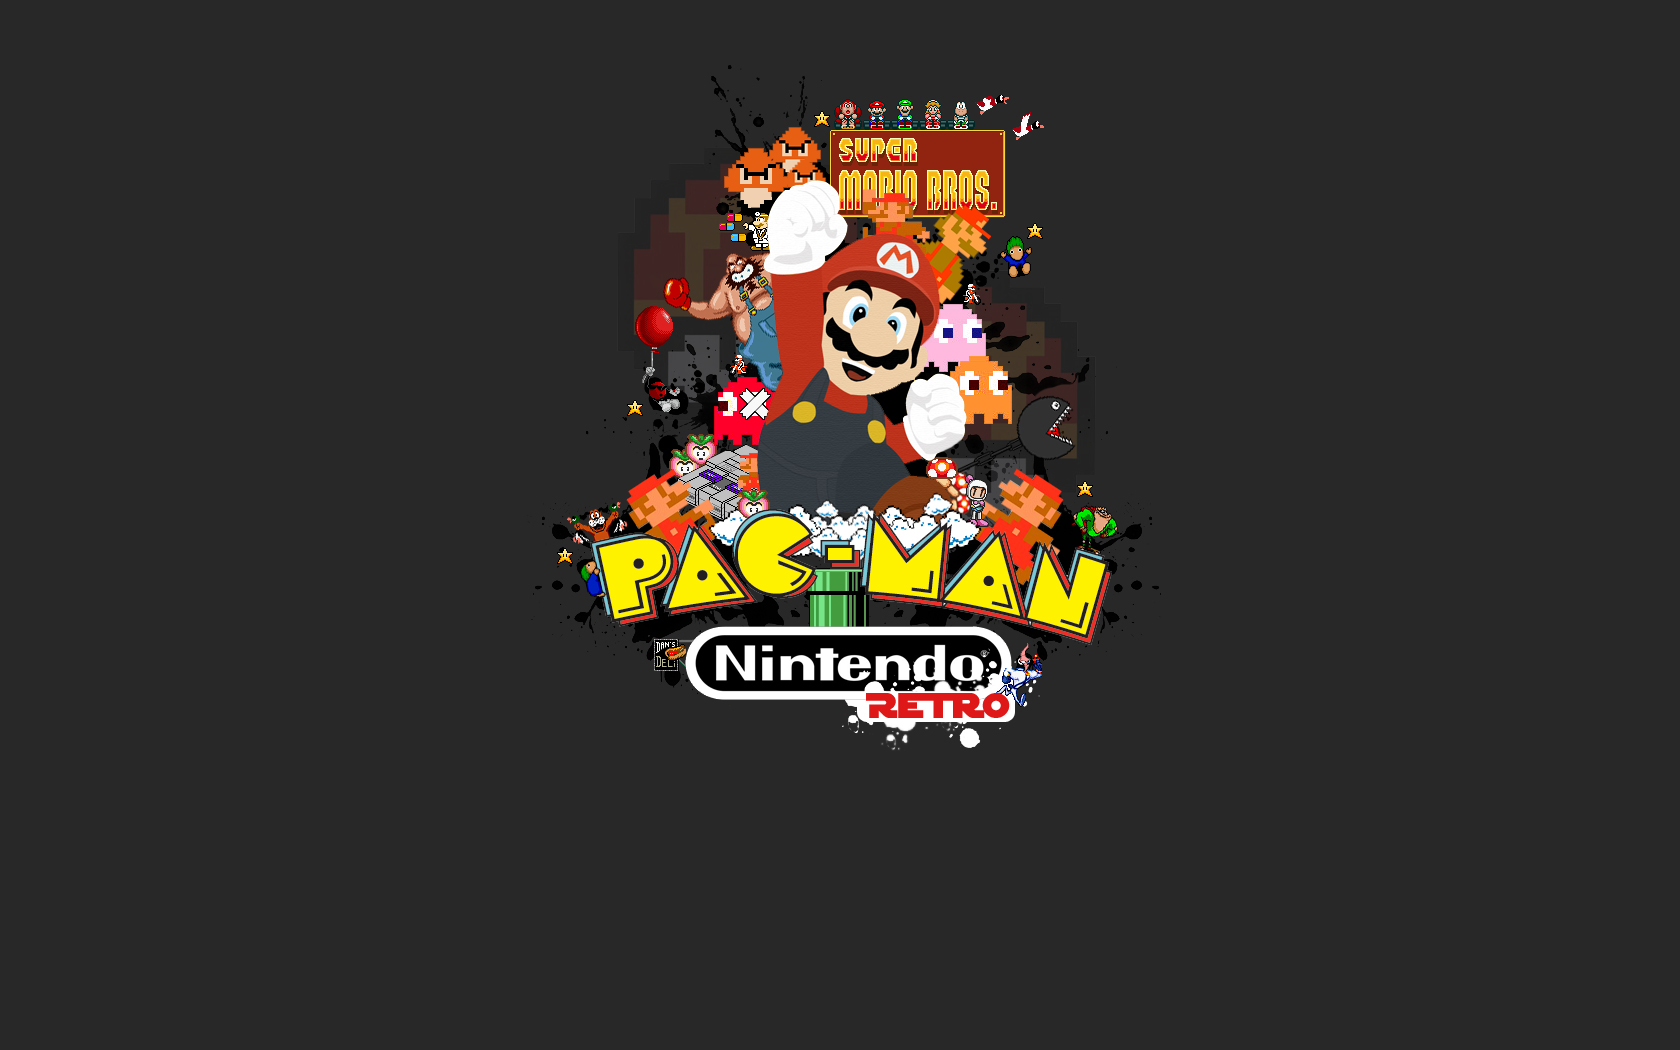 Nintendo Wallpaper and Background Image   1680x1050   ID:331249 - Wallpaper Abyss